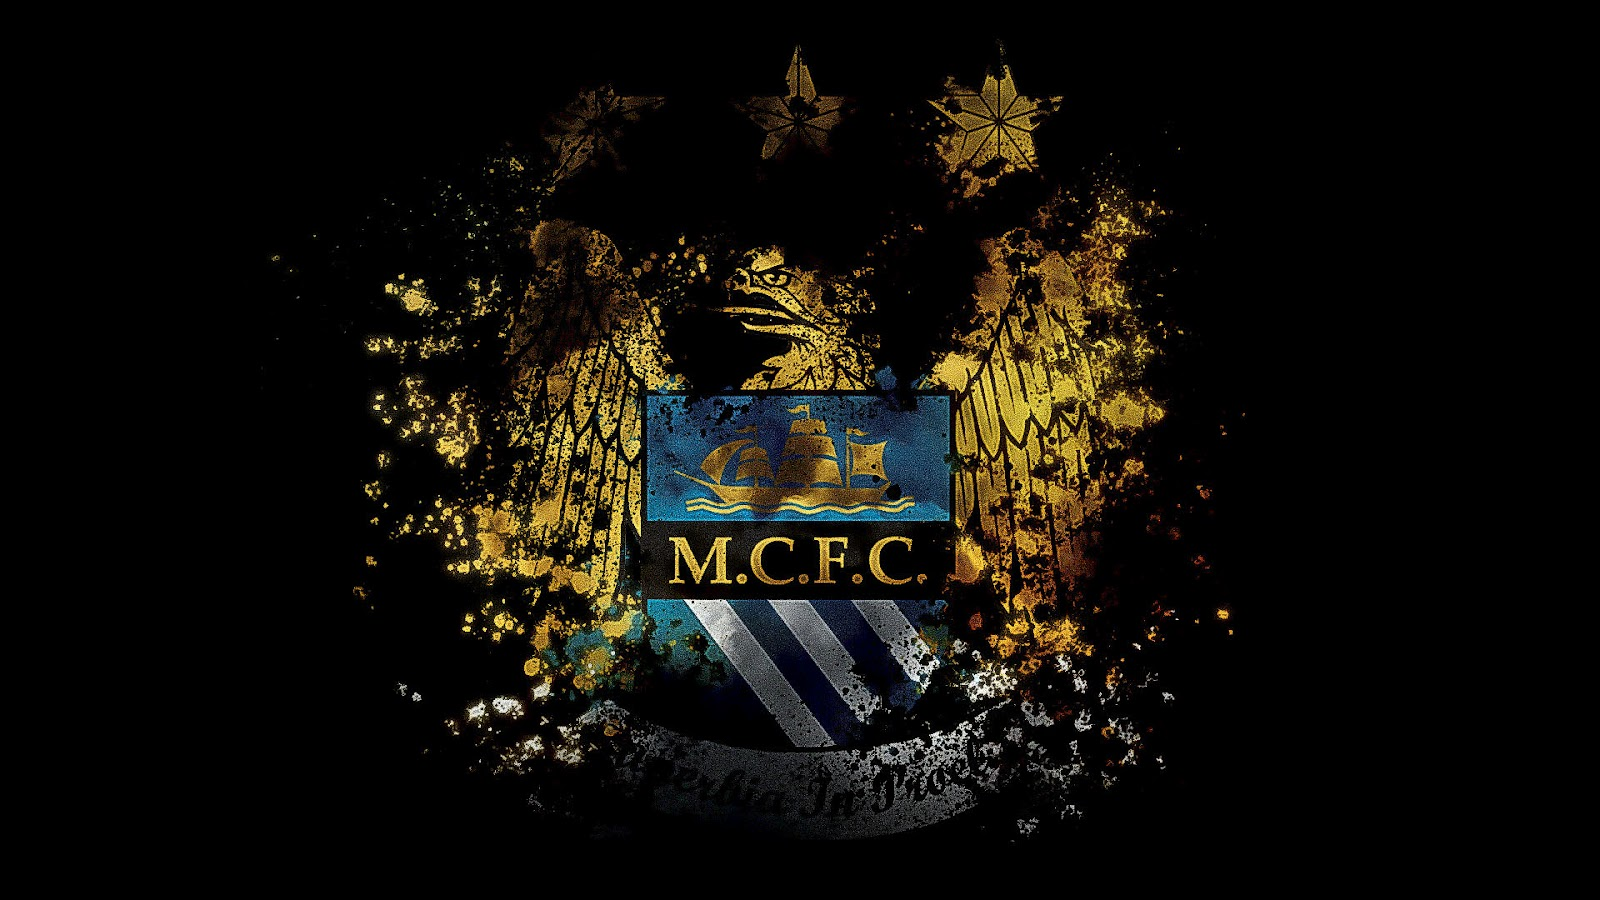 Manchester city 2013 wallpapers hd for Best home wallpaper 2013